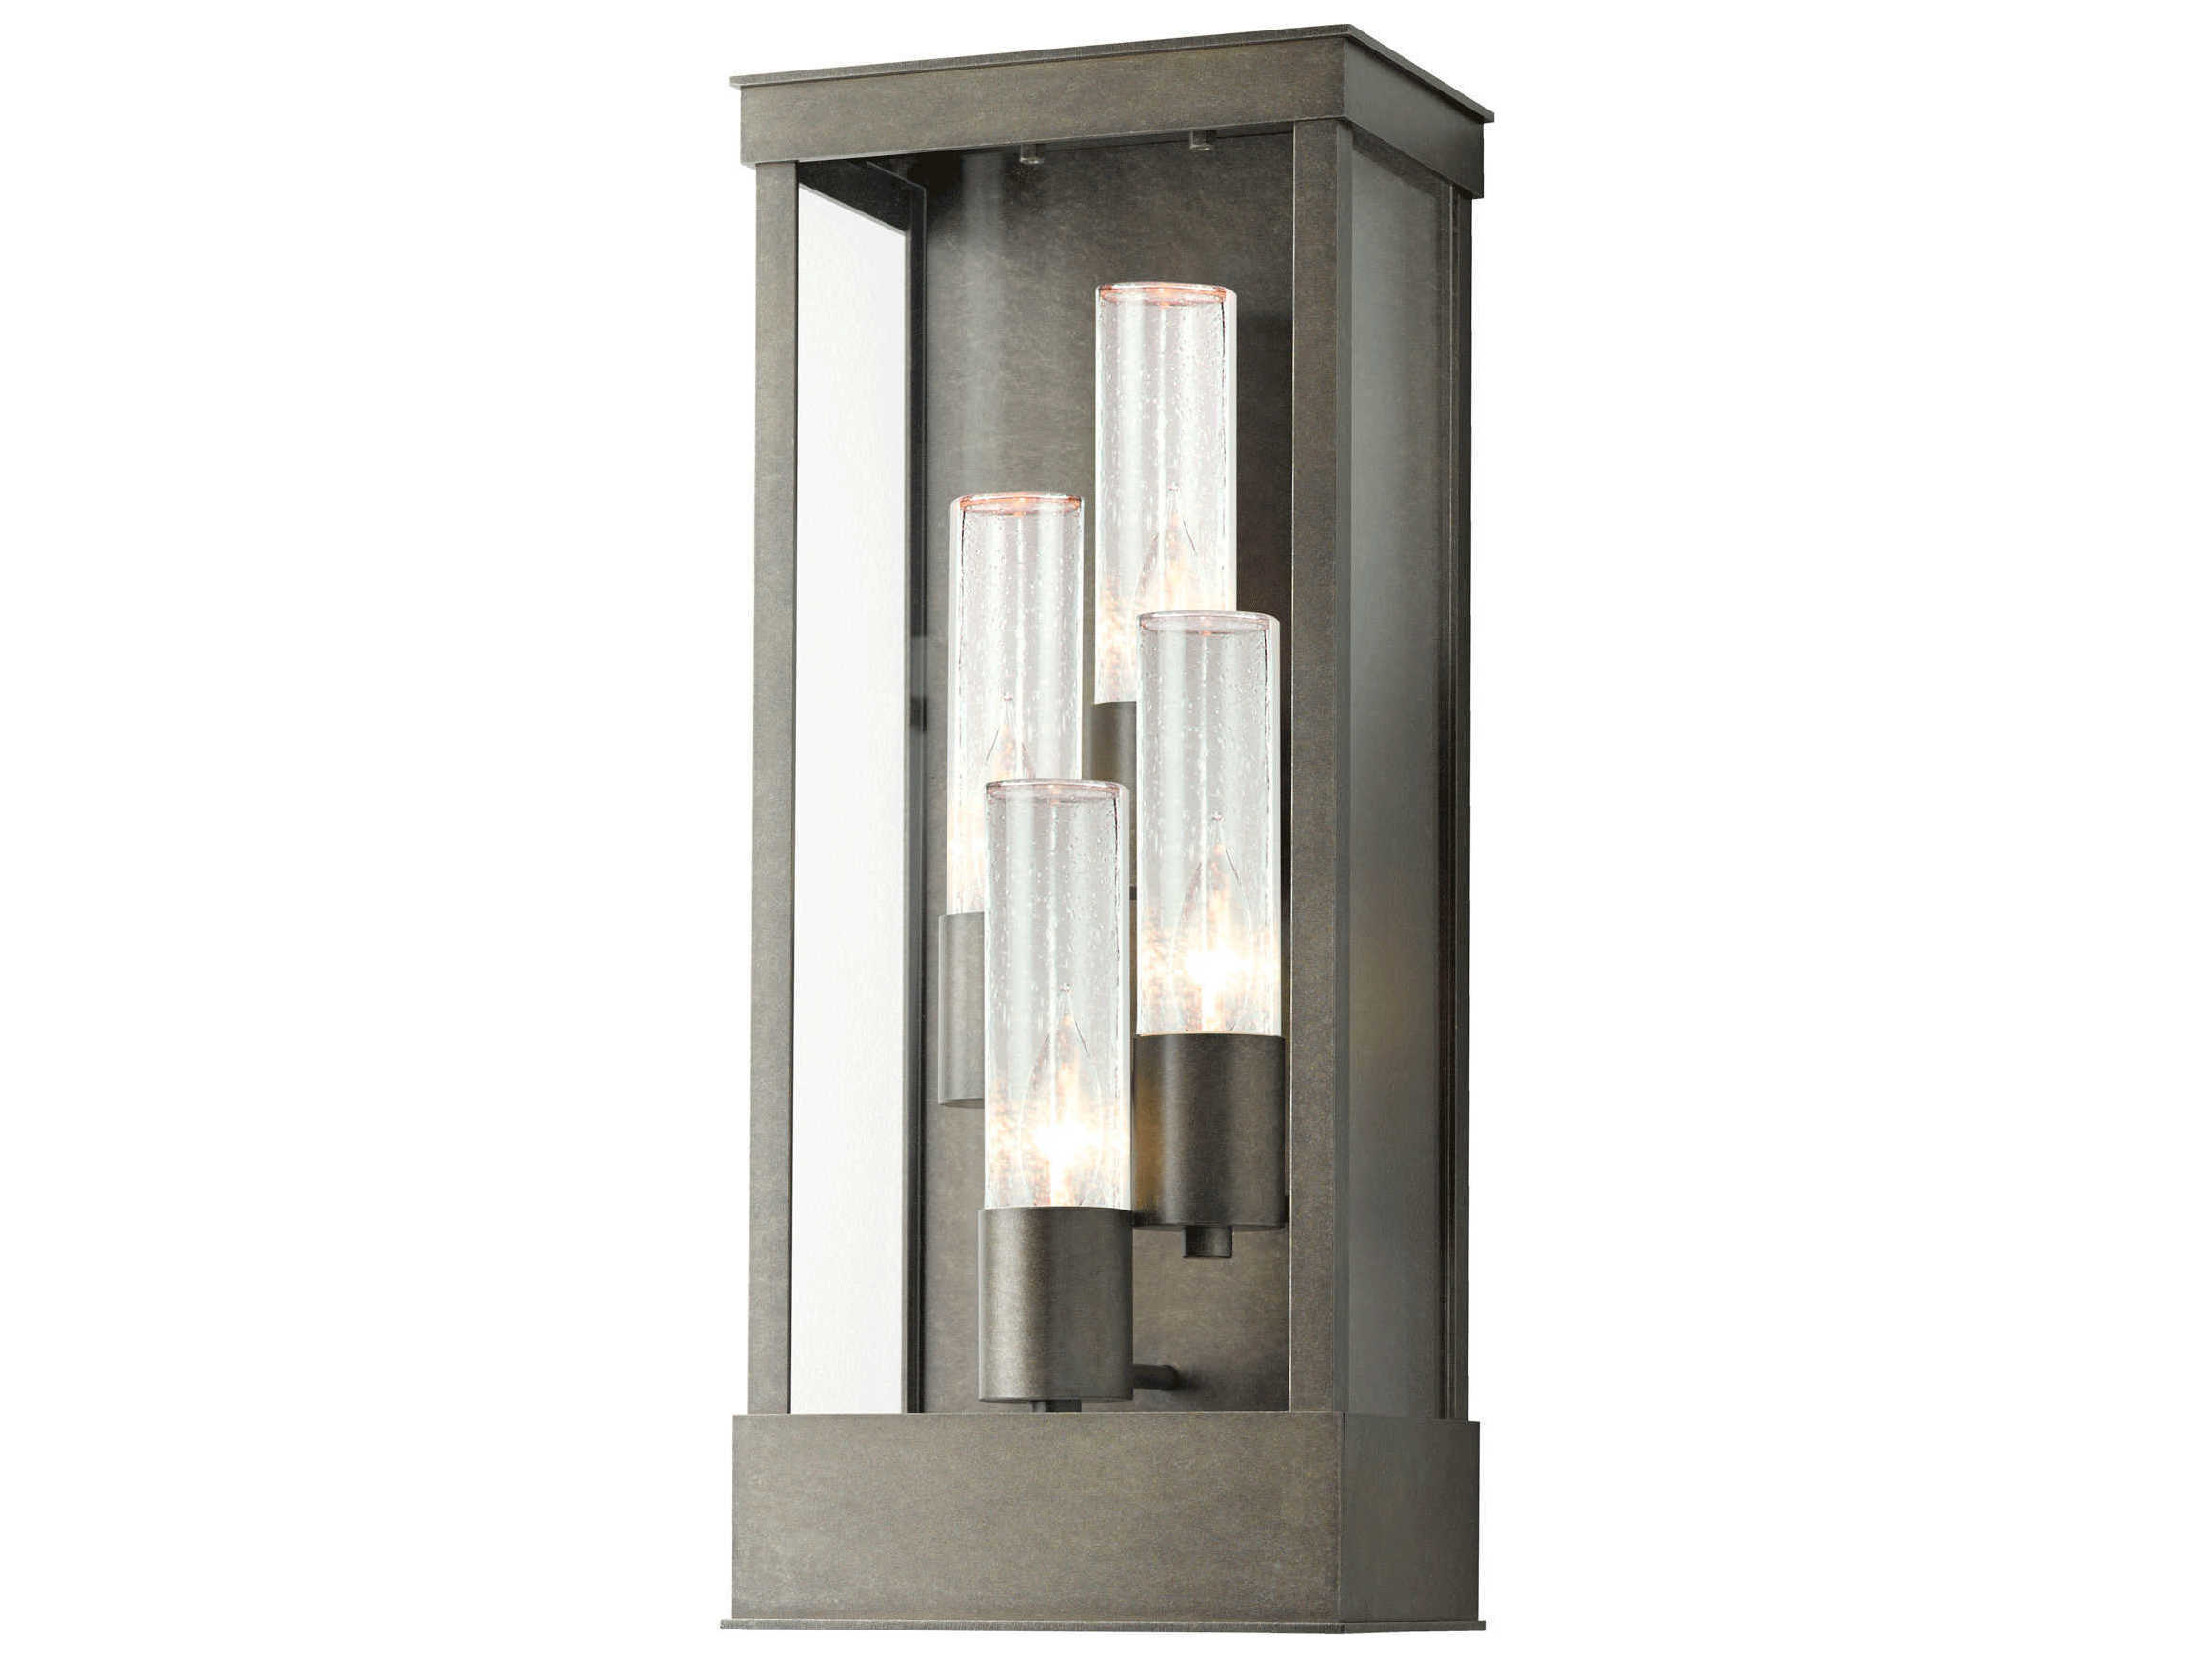 Hubbardton Forge Portico Four Light Outdoor Wall Light 304330